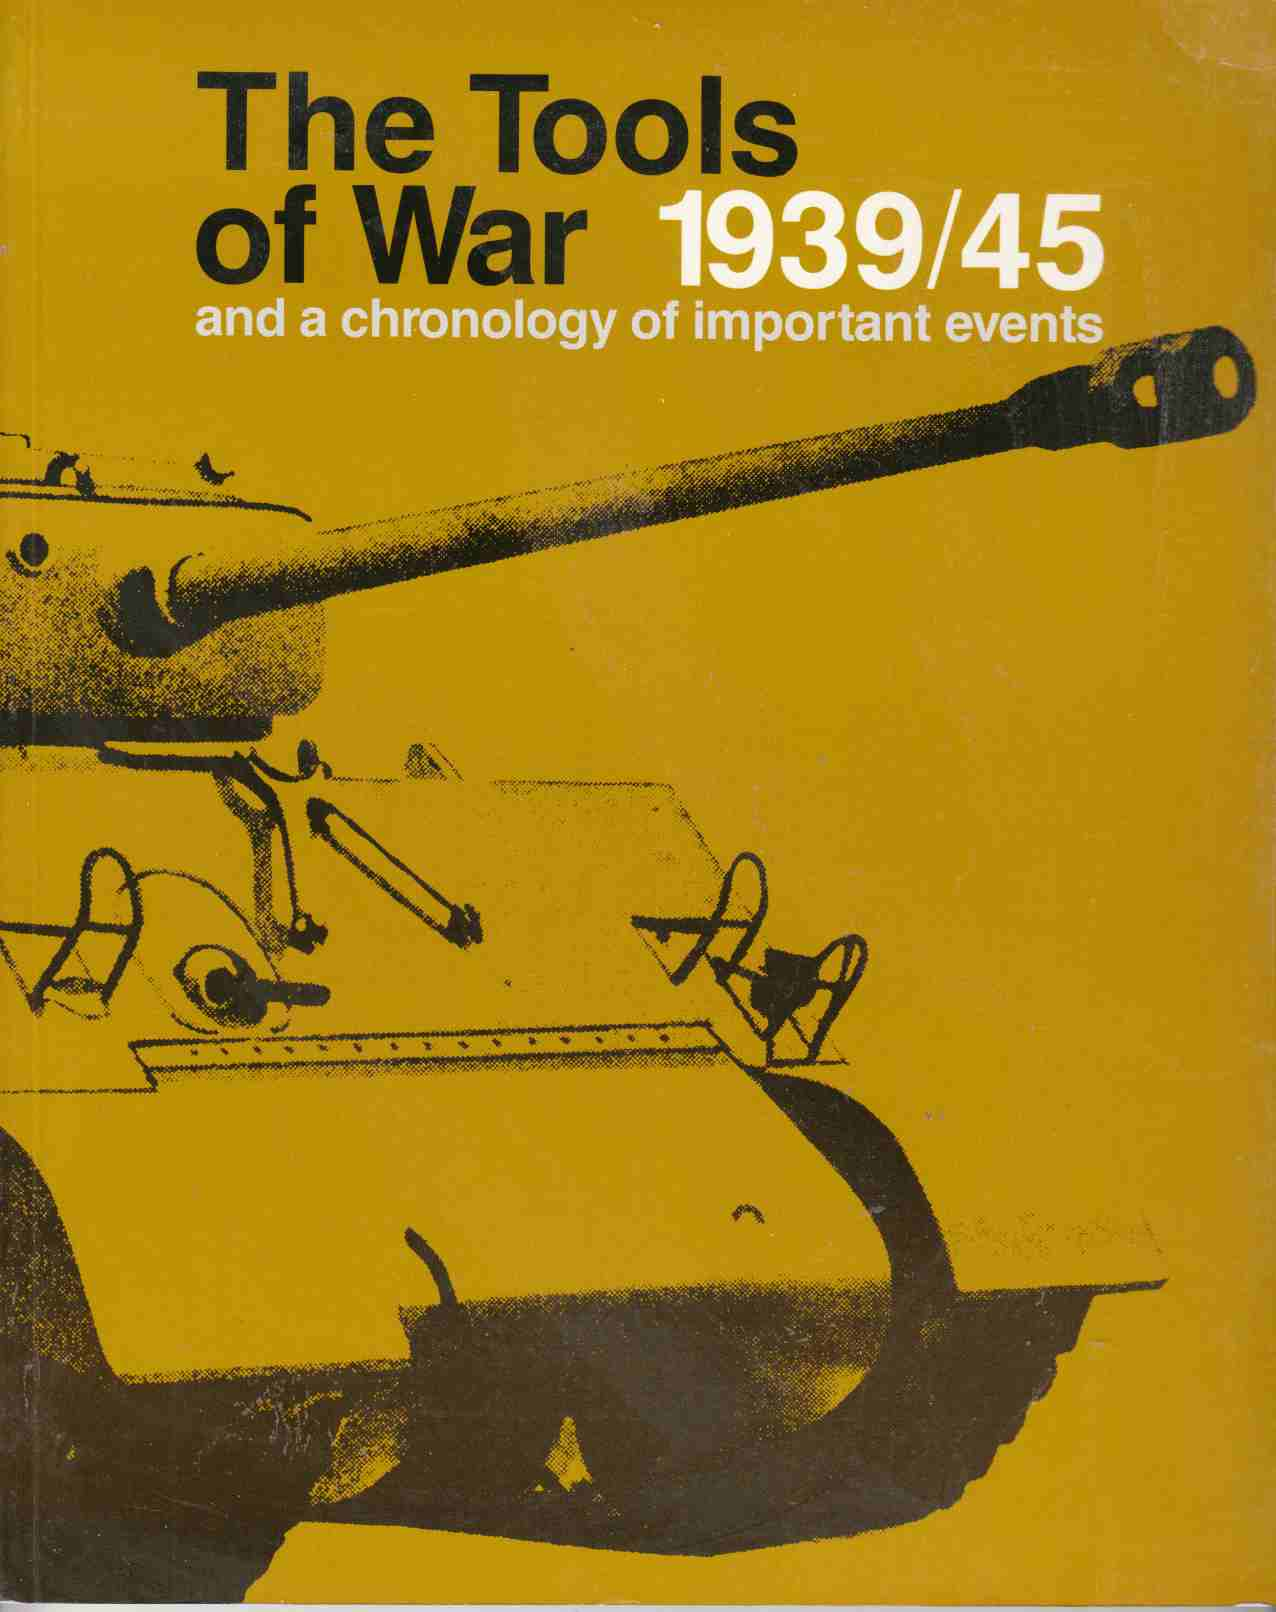 Image for The Tools of War 1939/45 and a Chronology of Important Events